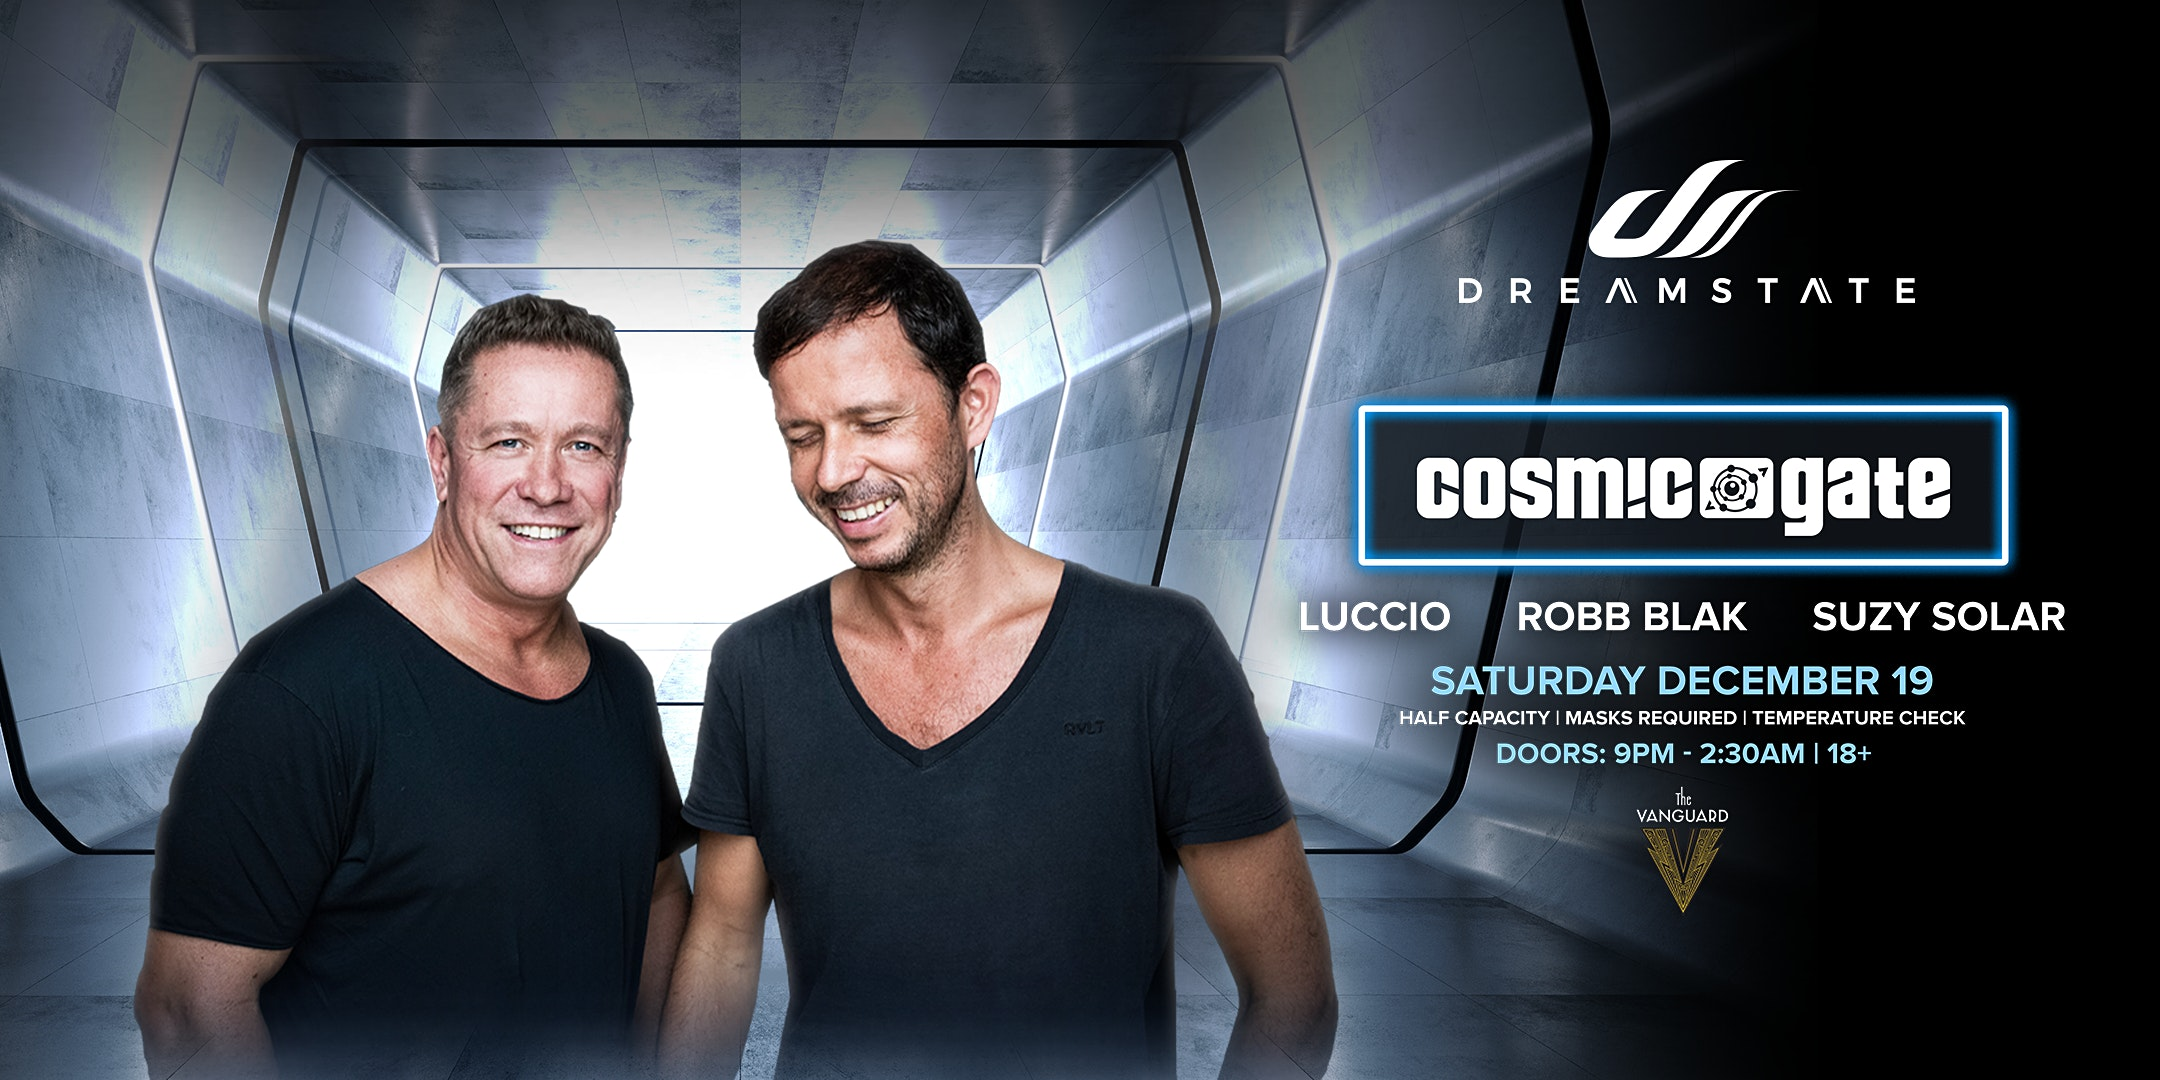 Dreamstate featuring Cosmic Gate